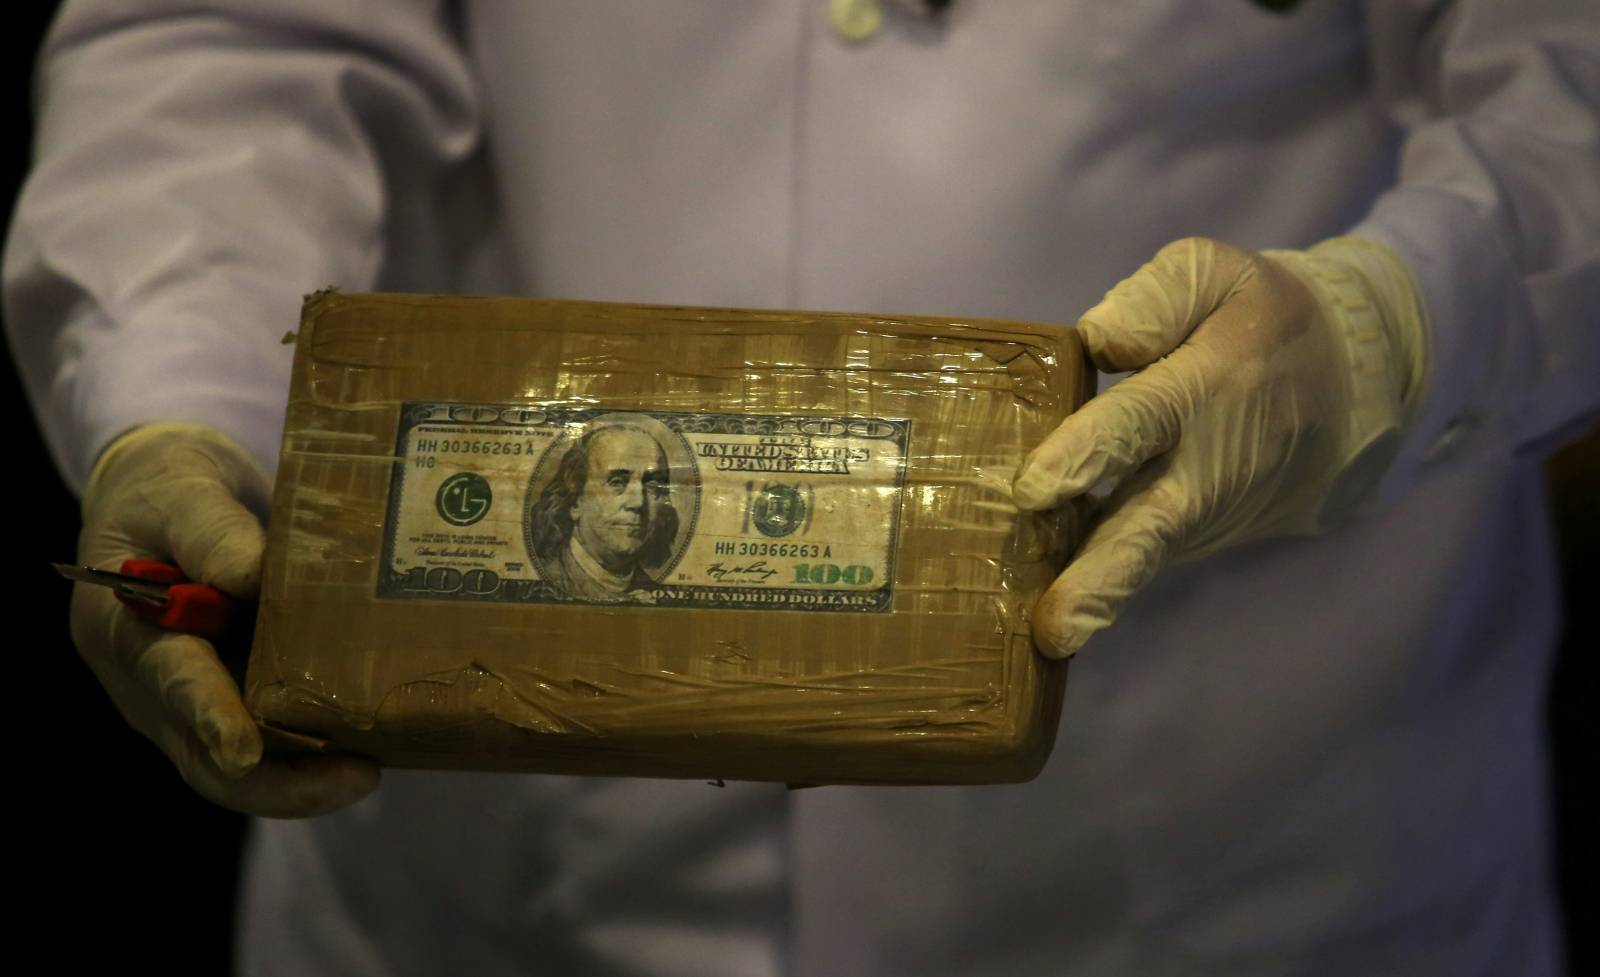 FILE PHOTO: A cocaine brick seized during an operation is displayed to the media at the Peruvian police headquarters in Lima